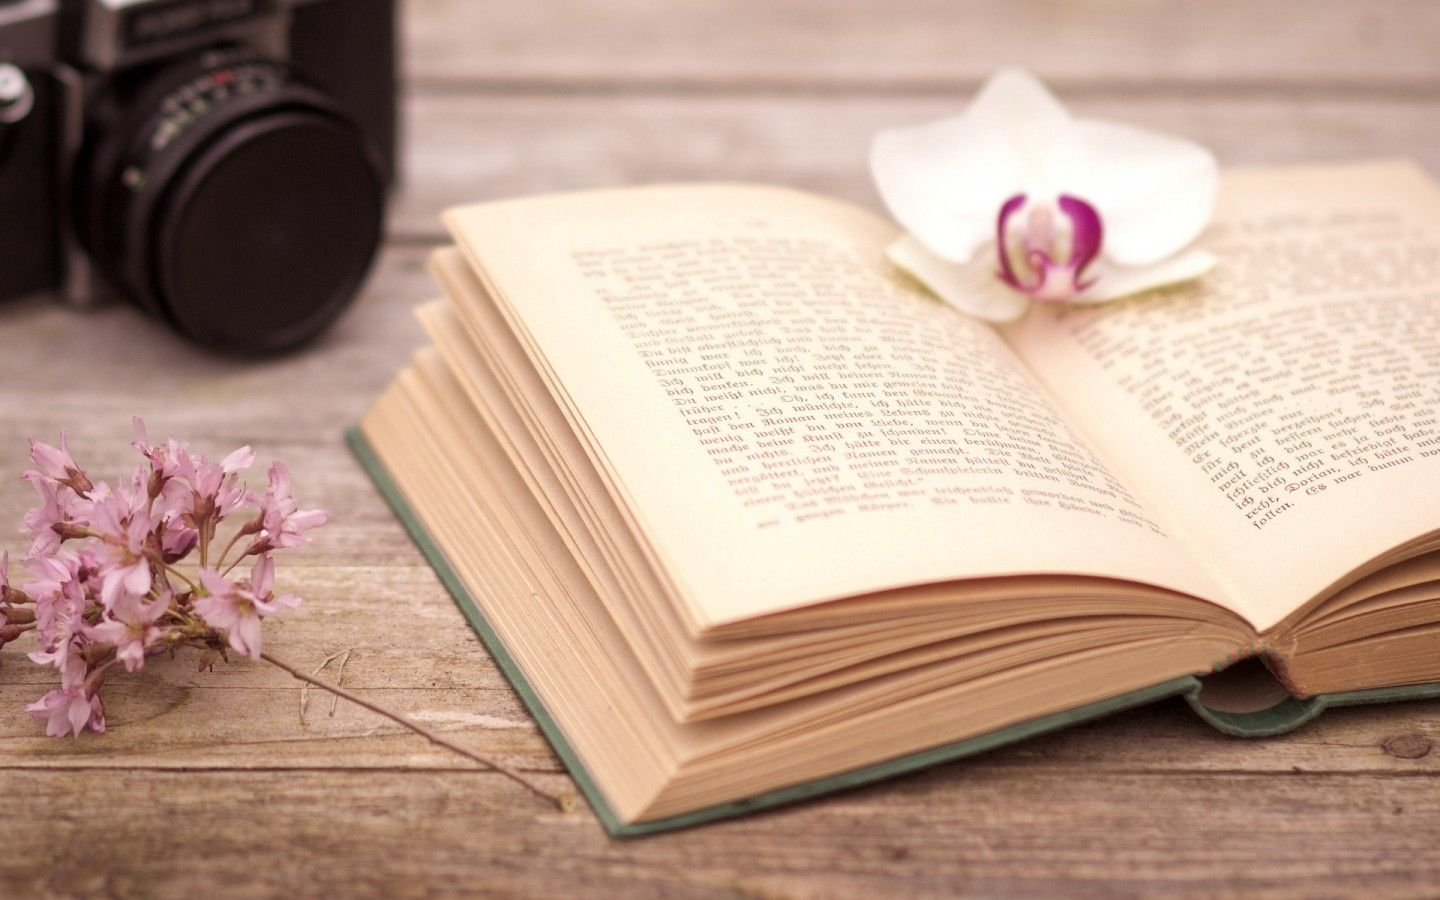 Download Wallpaper Mood, Book, Book, Pages, Leaves